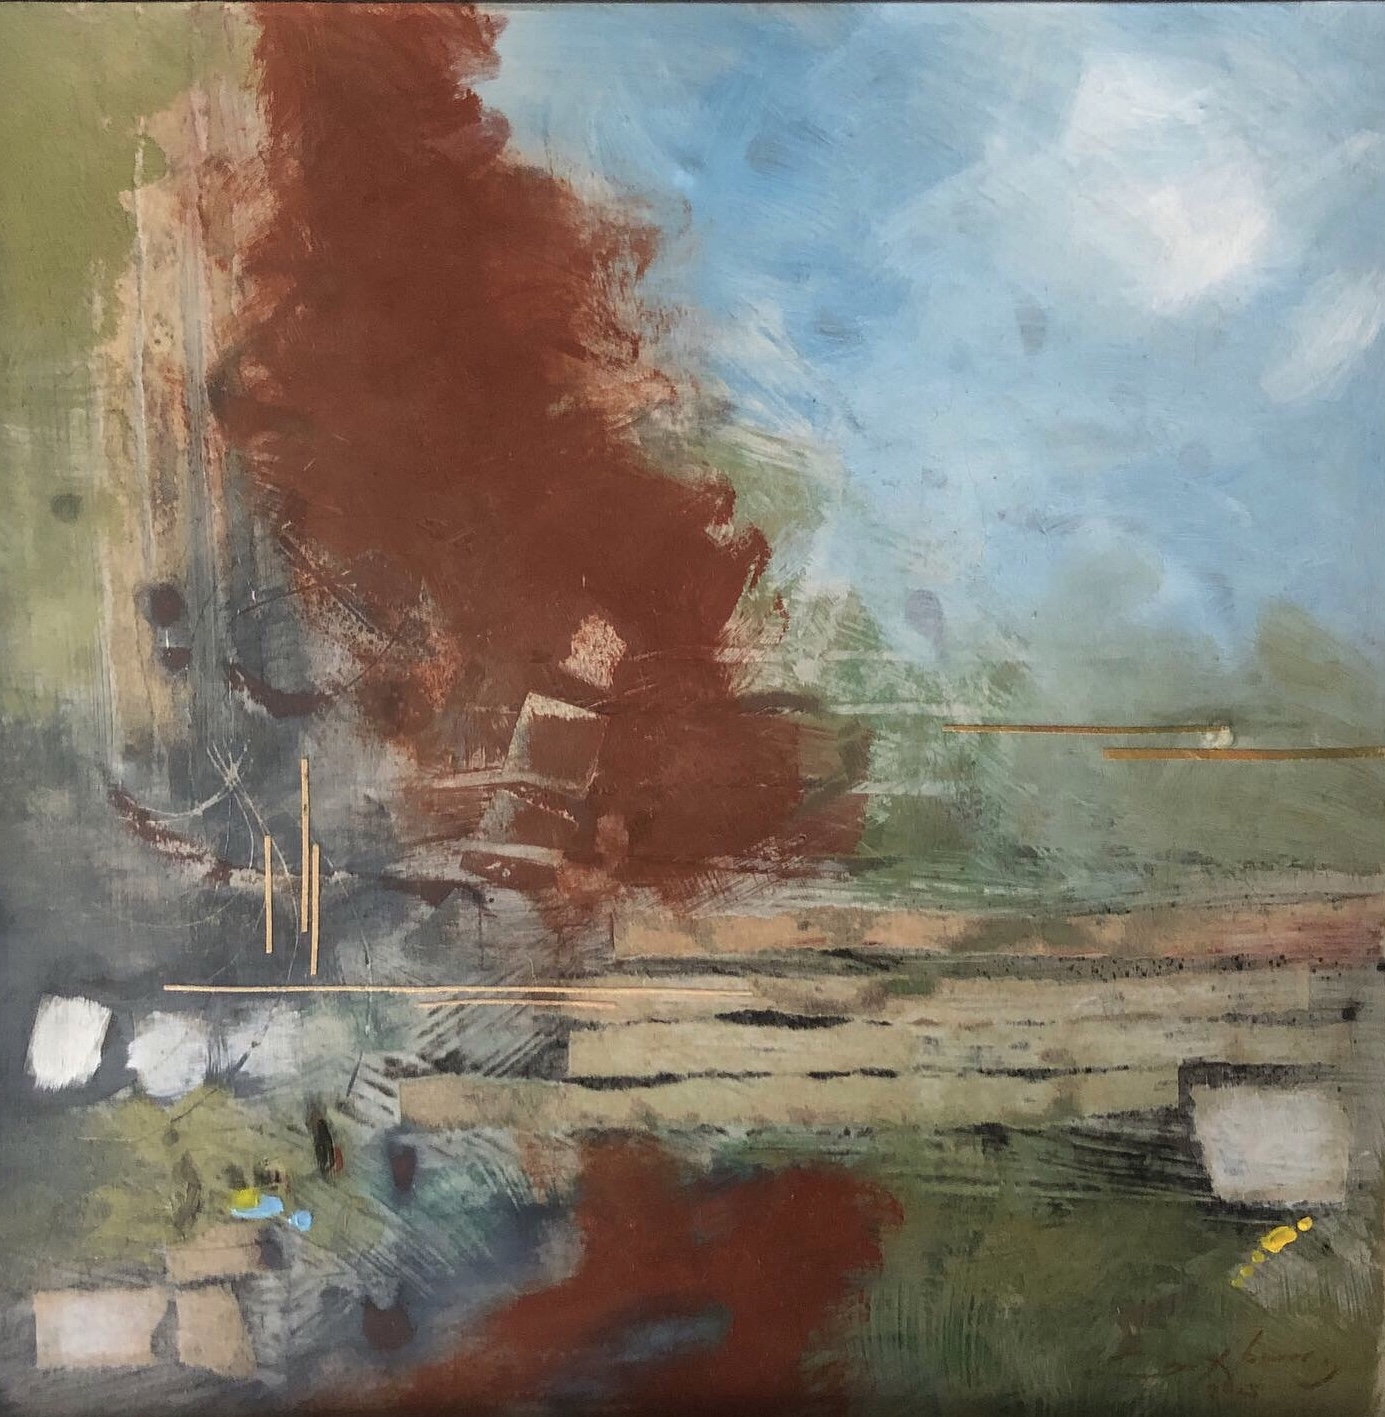 No One Lives Here Now artwork by David Holcomb - art listed for sale on Artplode